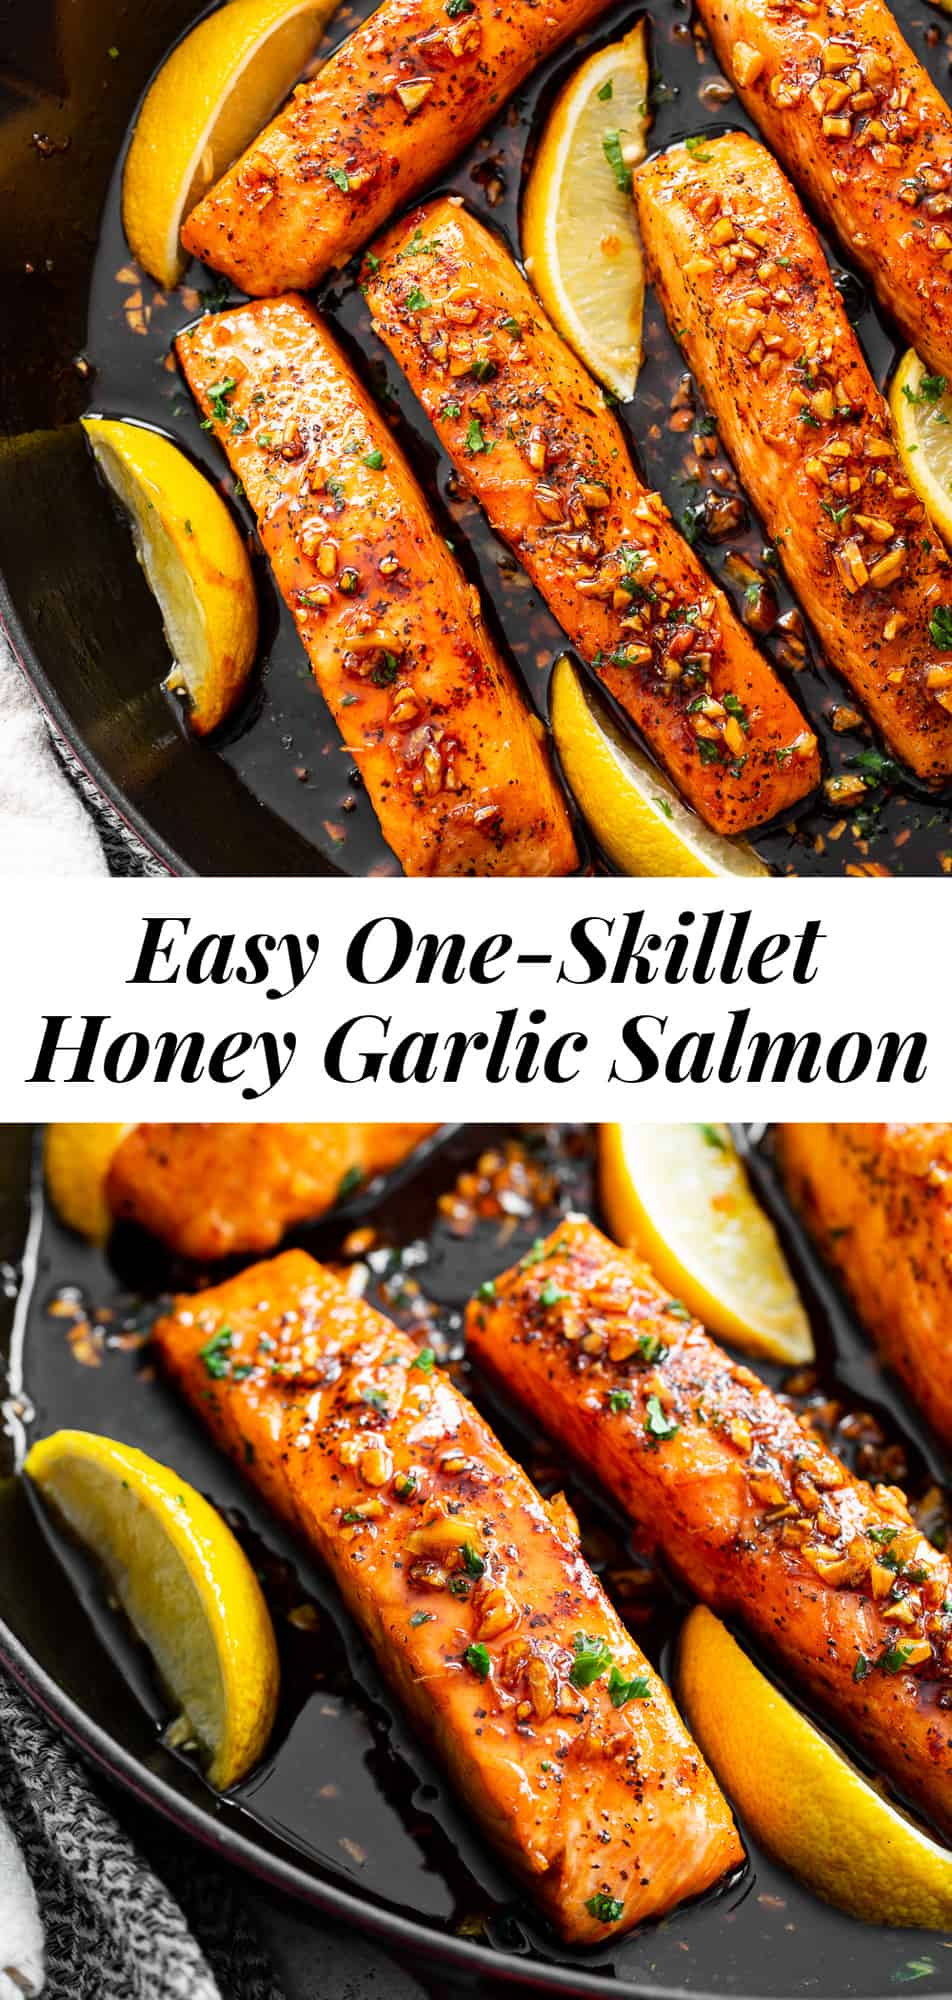 This simple 20 minute honey garlic salmon is made in one skillet and the sauce is addicting!  It's paleo, gluten free and a family favorite.  Serve it over cauliflower rice and with your favorite veggies for a healthy weeknight meal.  #paleo #cleaneating #salmon